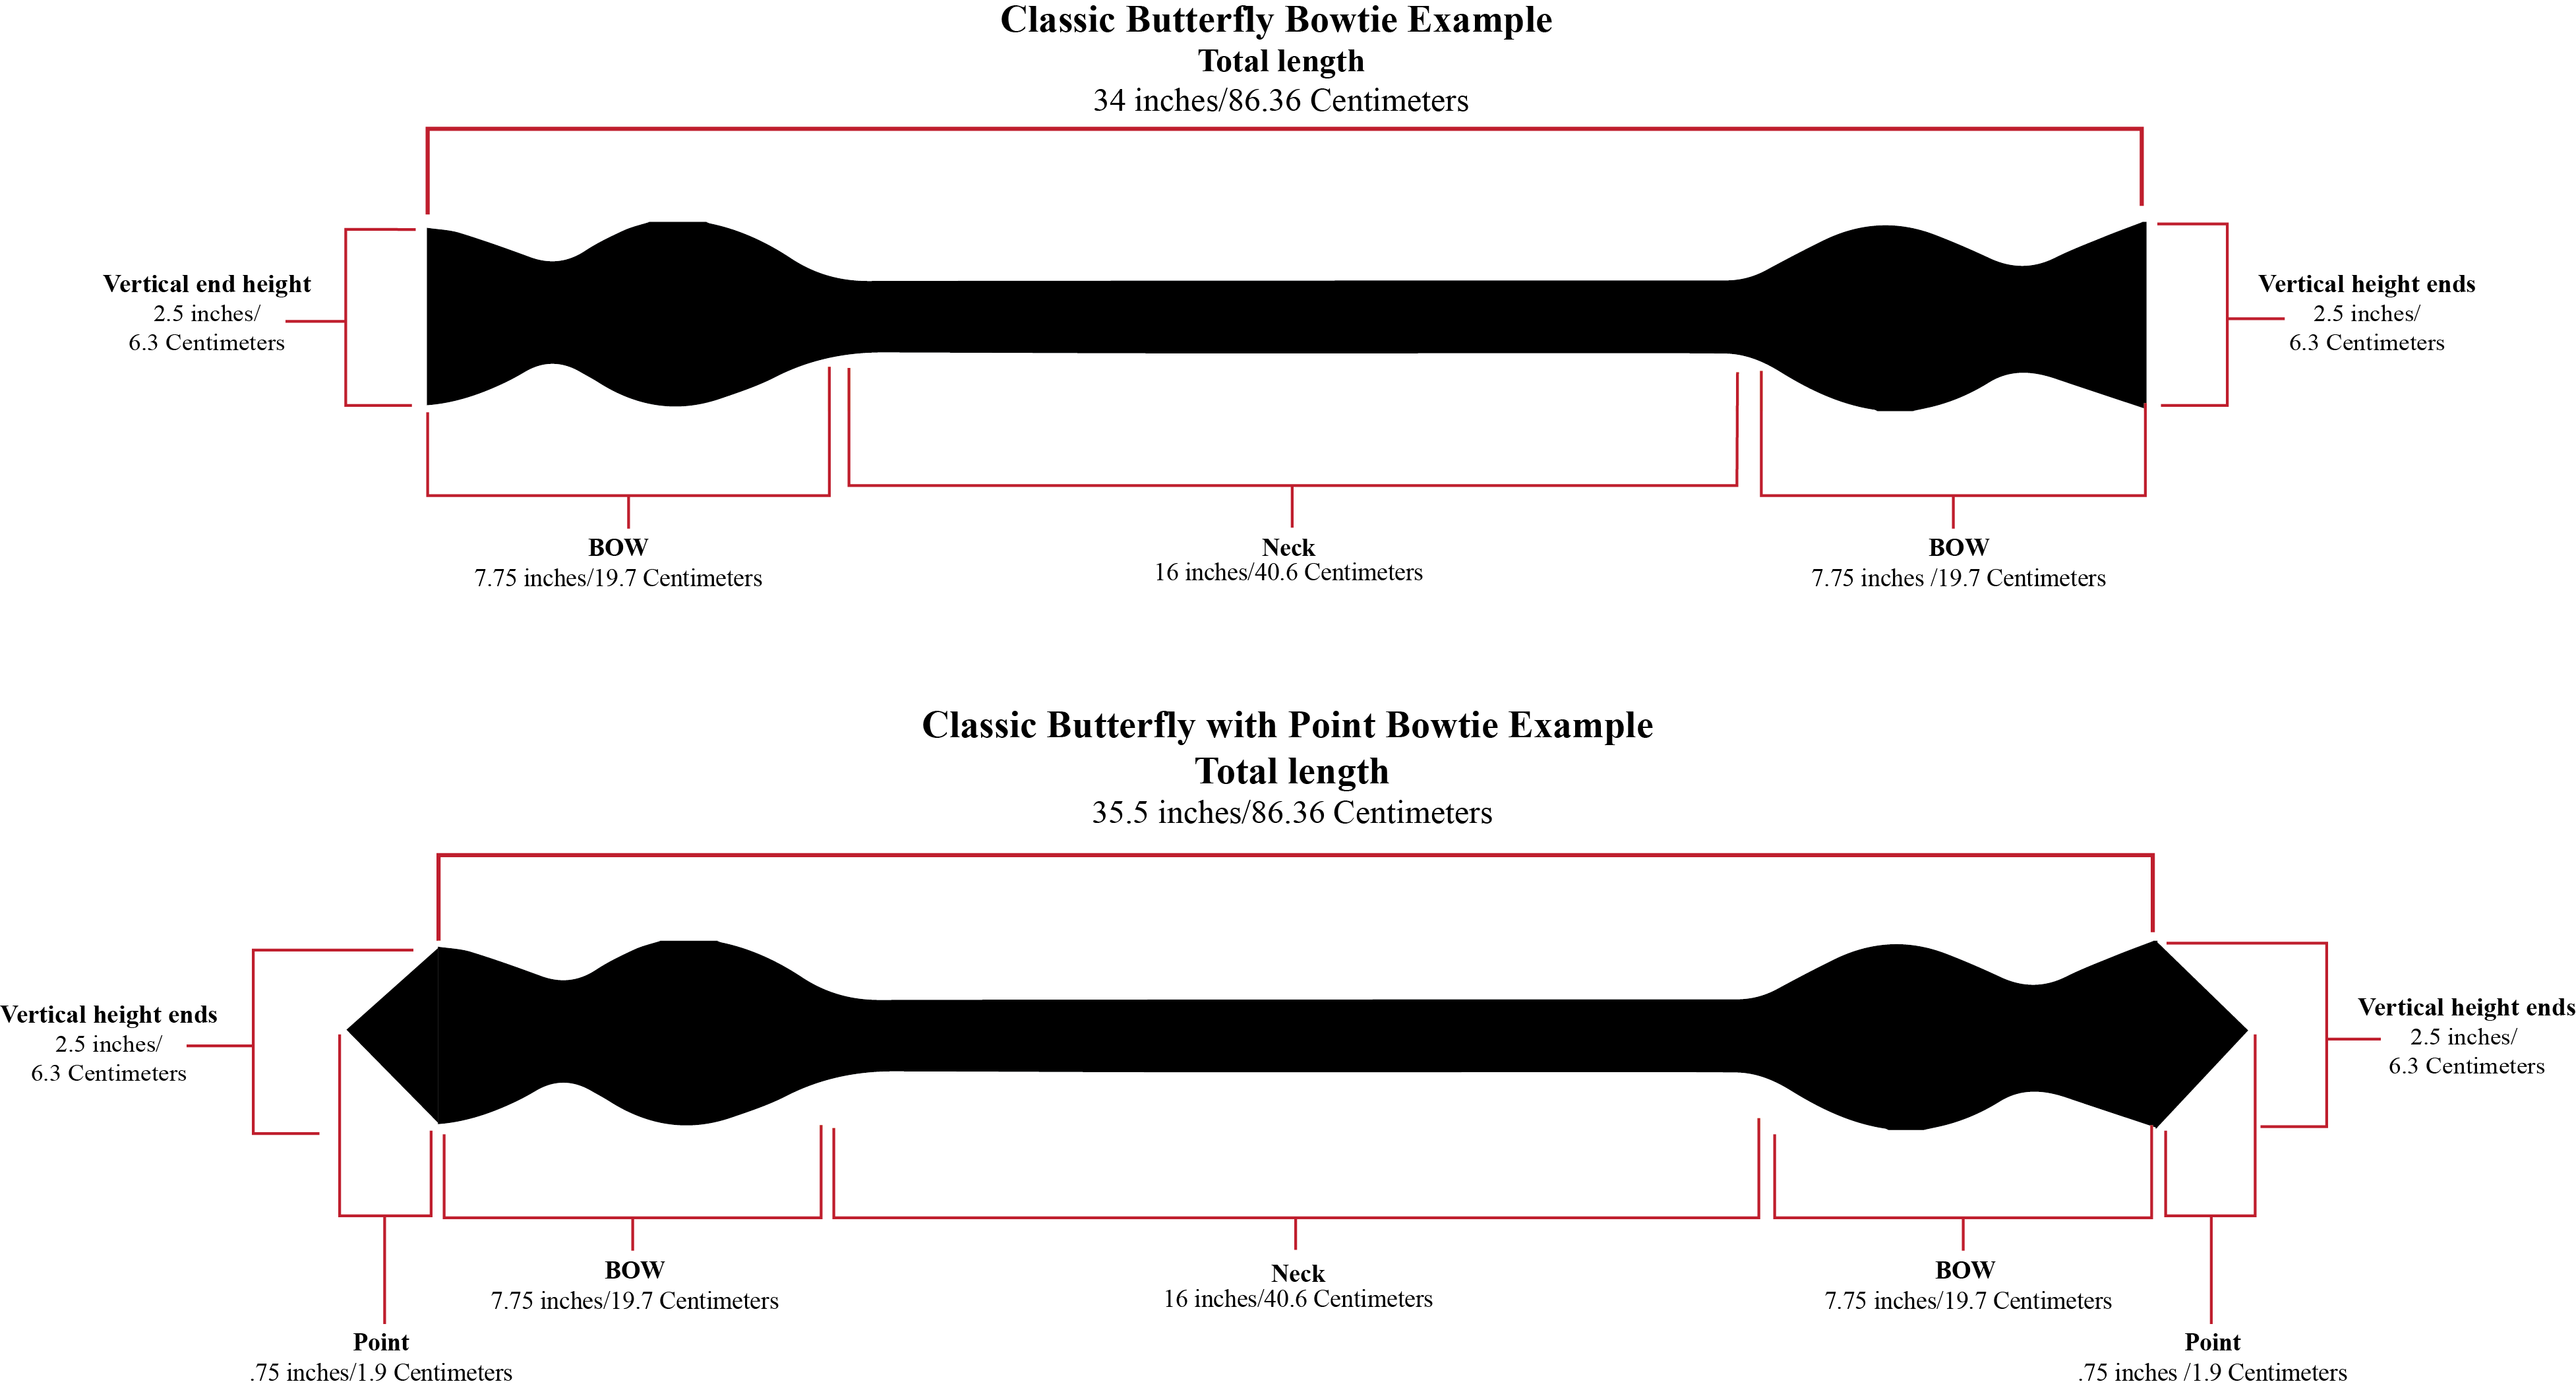 Bow Ties Tie Diagram Shapes